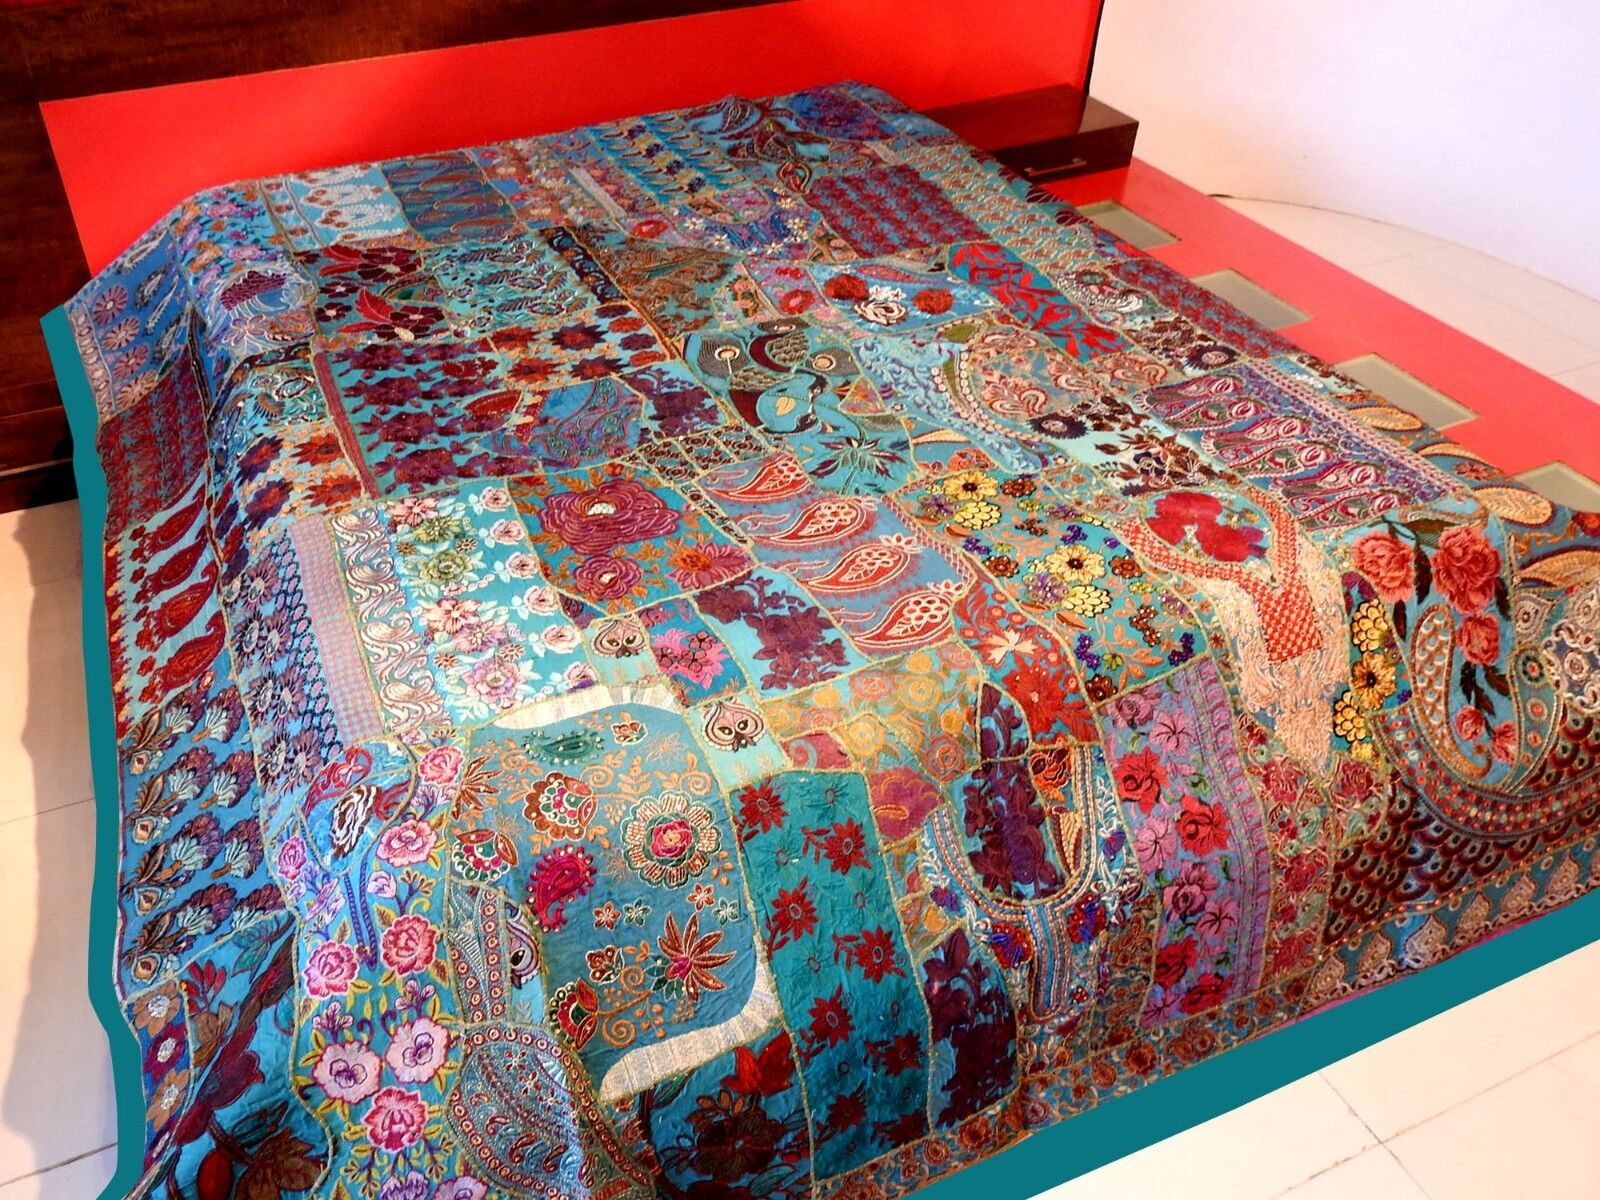 Vintage Patchwork Bedspread Hand Embroidery Bed Cover, Wall Hanging Curtain BS51